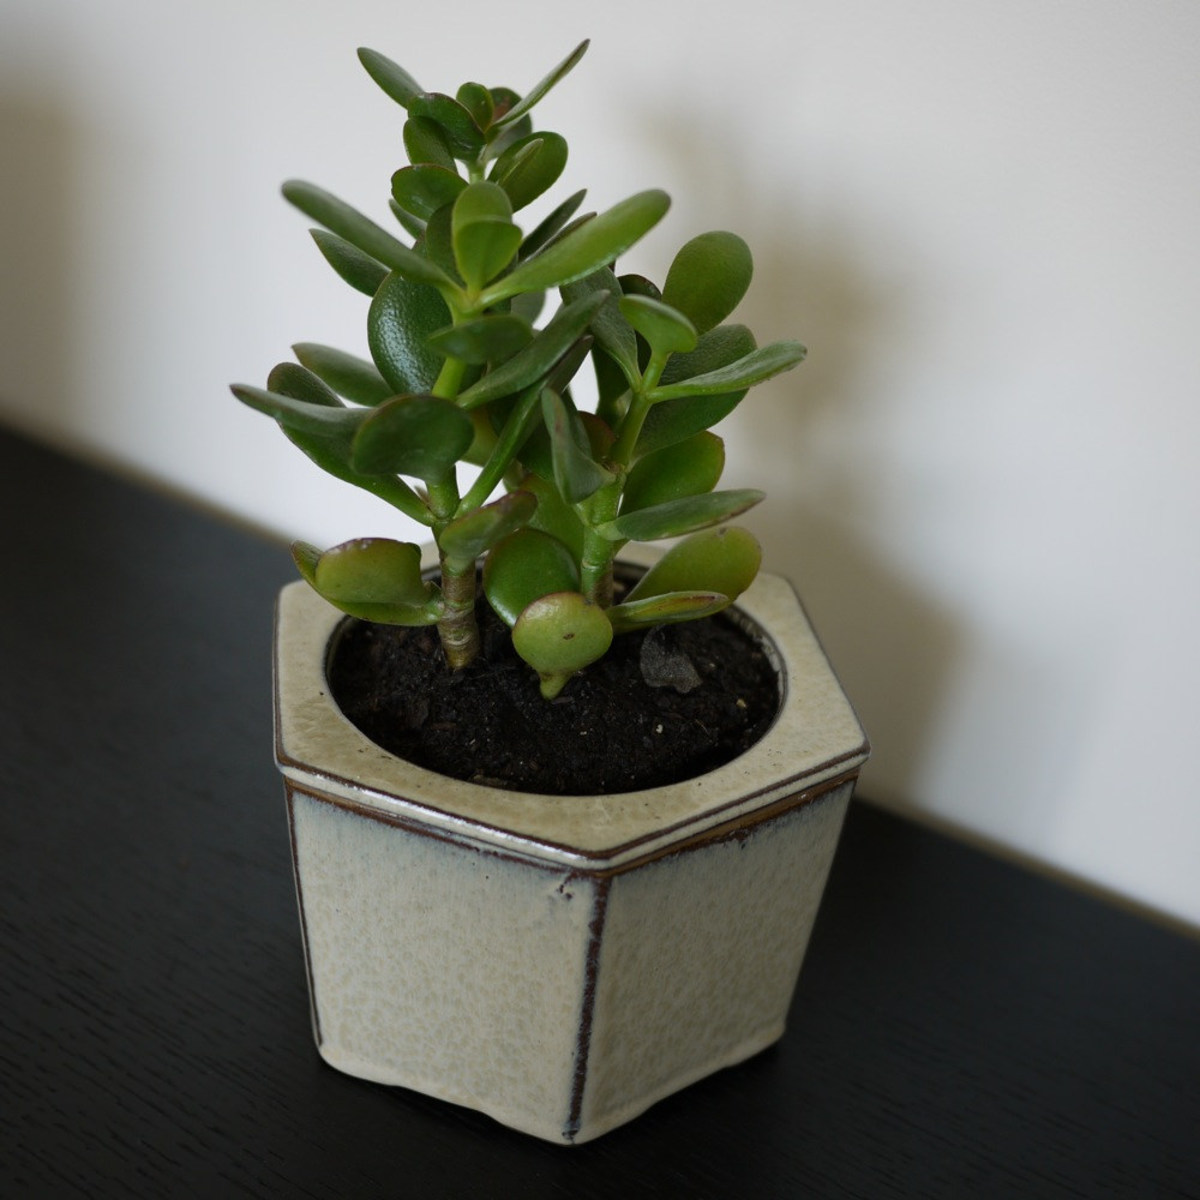 The Jade Plant is a fantastic indoor succulent plant that stays green year round.